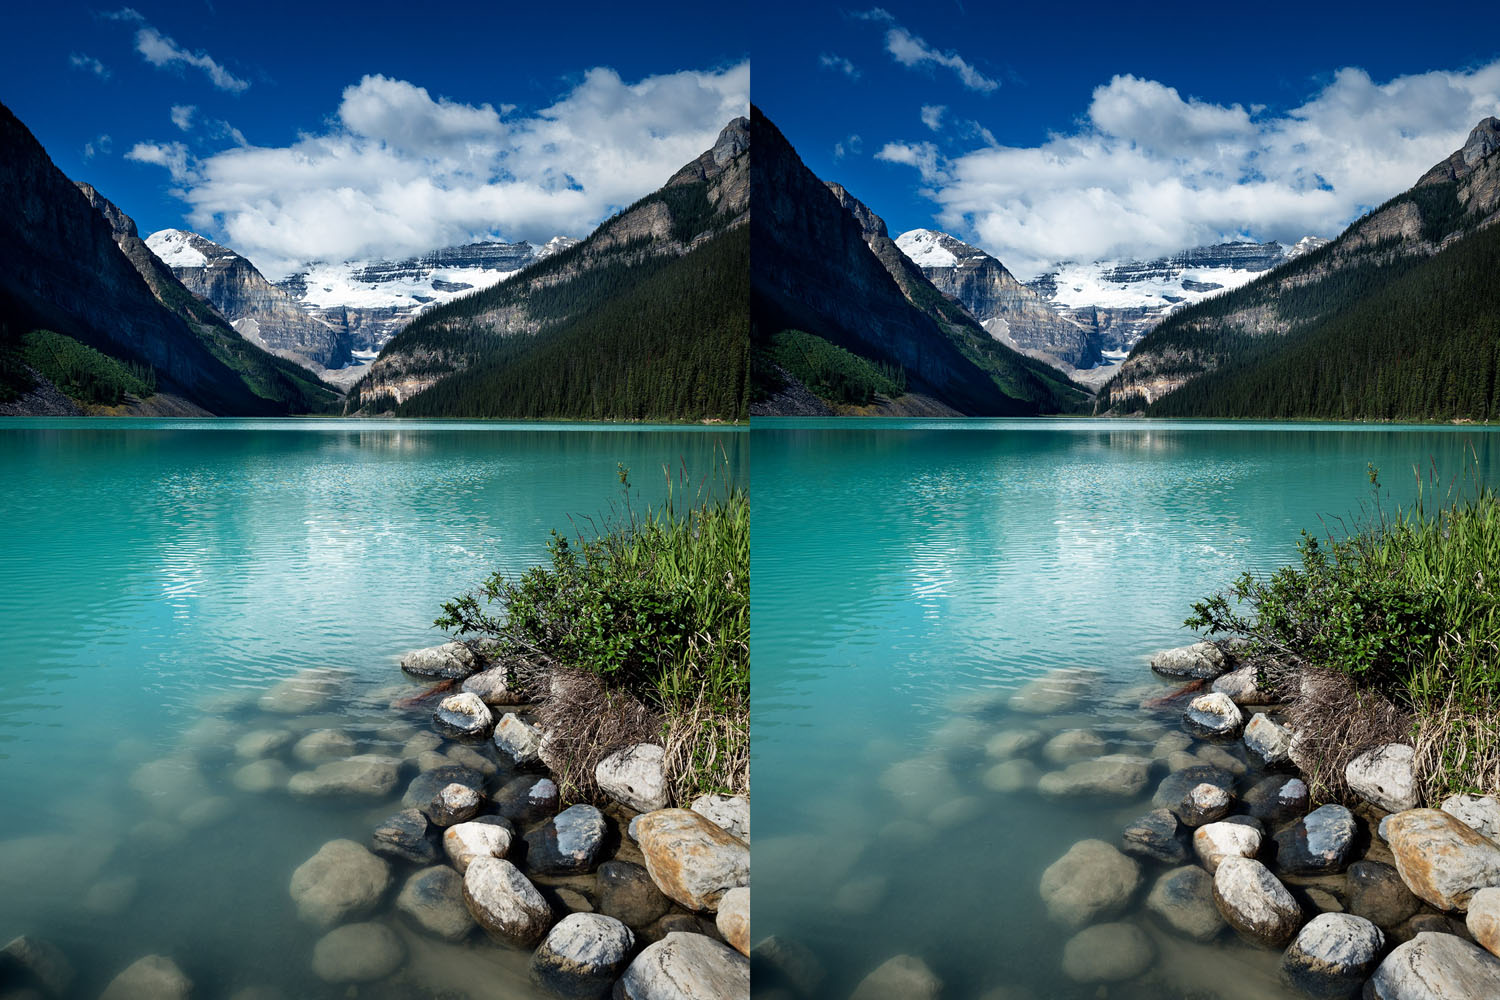 Comparison of two image same absolute pixel size but different DPI and theoretical size